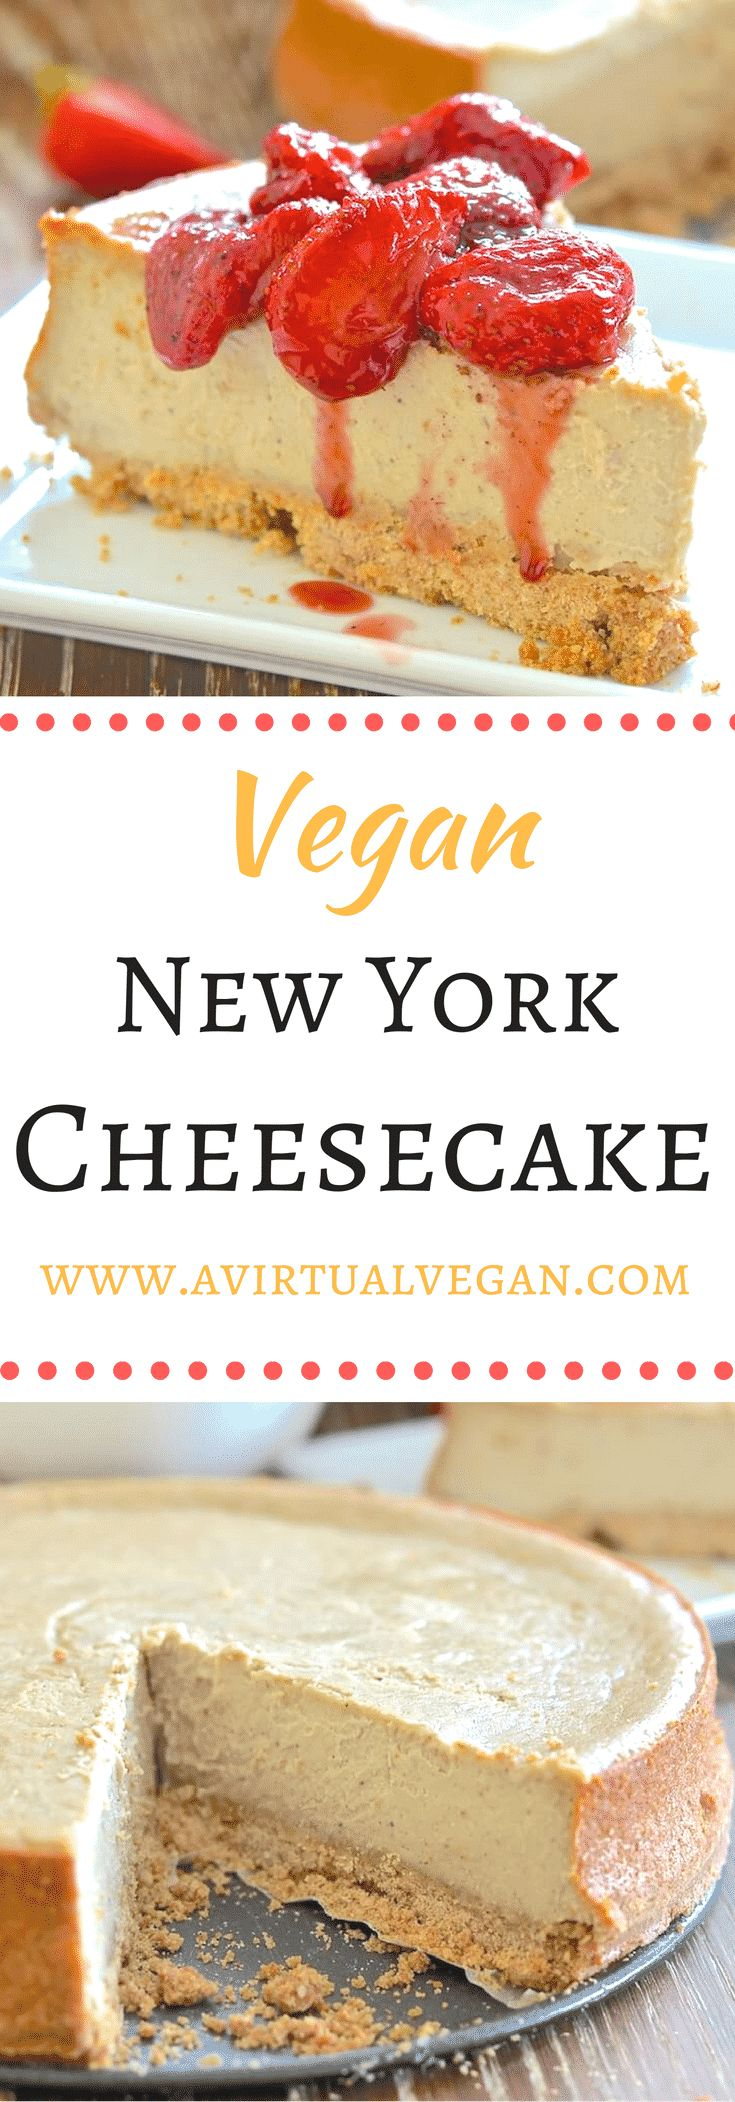 This baked Vegan New York Cheesecake is ultra-rich, decadently creamy dessert perfection. You absolutely need this in your life.....